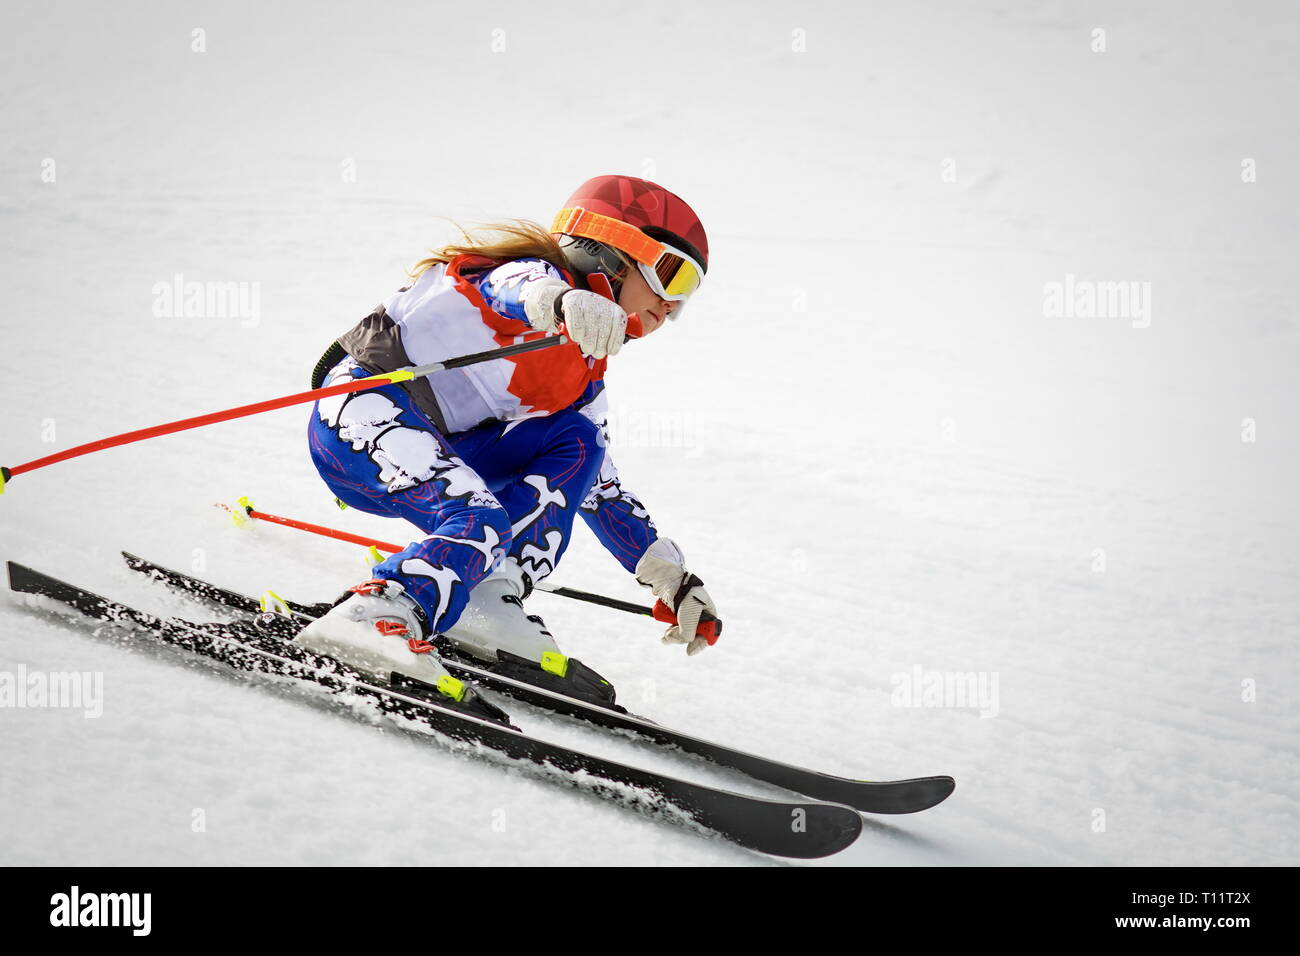 young skier in action in slalom ski competition downhill - Stock Image